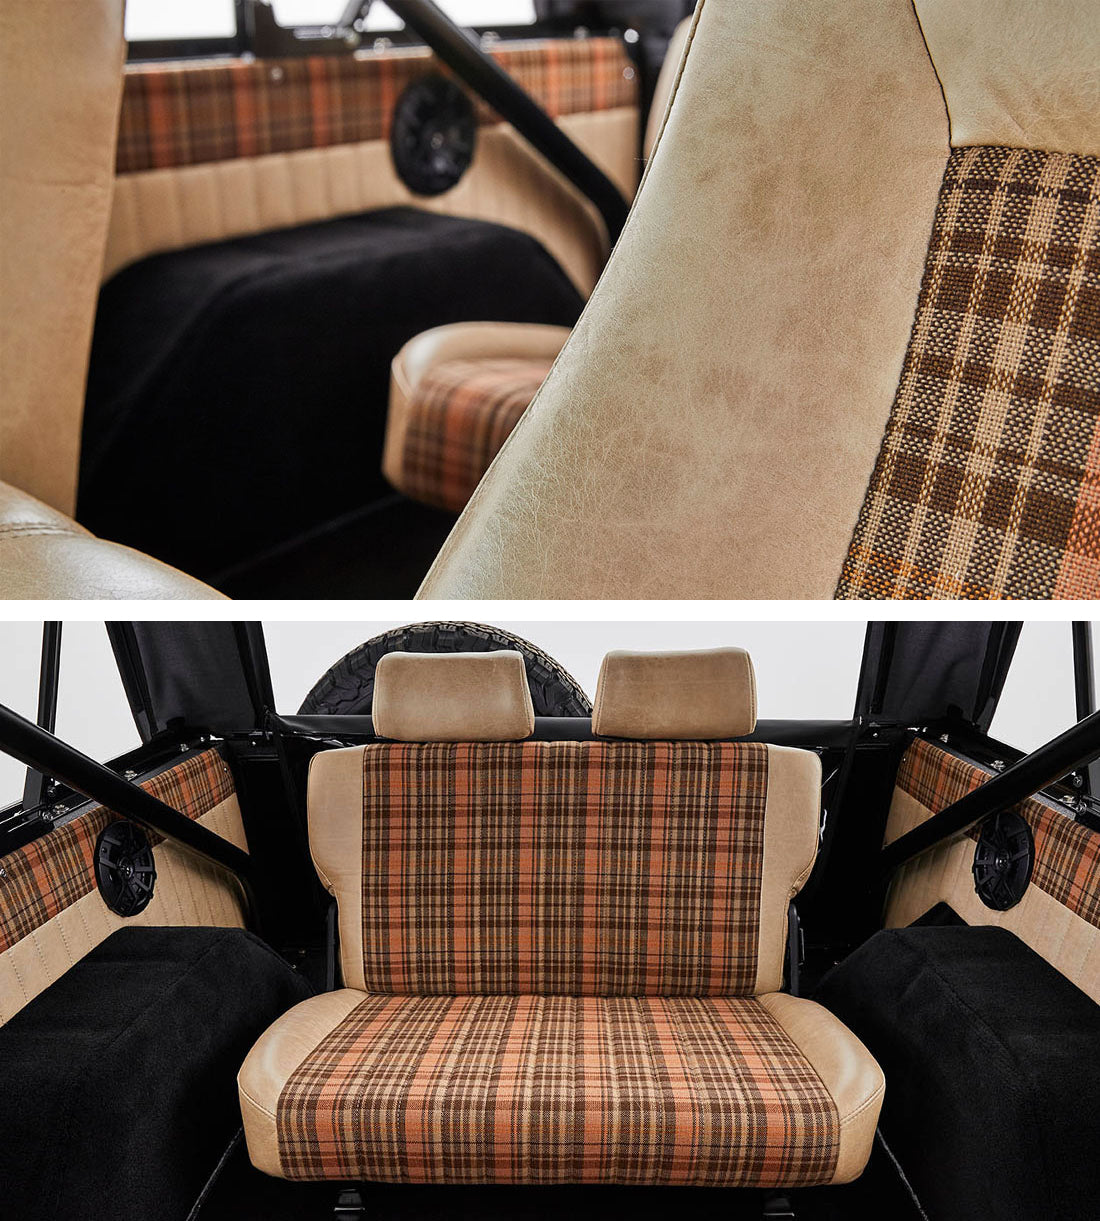 Classic Ford Broncos with Porsche Karo Madras plaid tartan seat fabric Relicate Leather Bench Seat